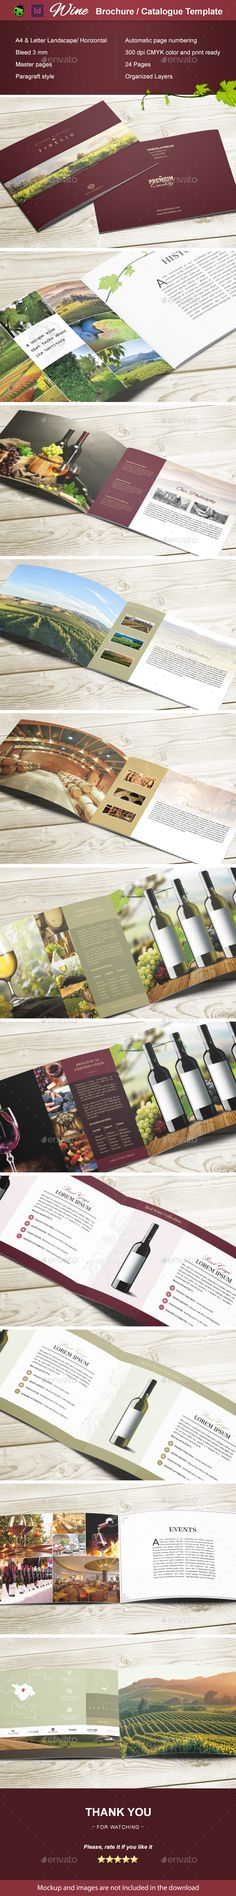 Wine Brochure / Catalogue — InDesign INDD #winemaker #catalogue • Download ➝ https://graphicriver.net/item/wine-brochure-catalogue/18772457?ref=pxcr